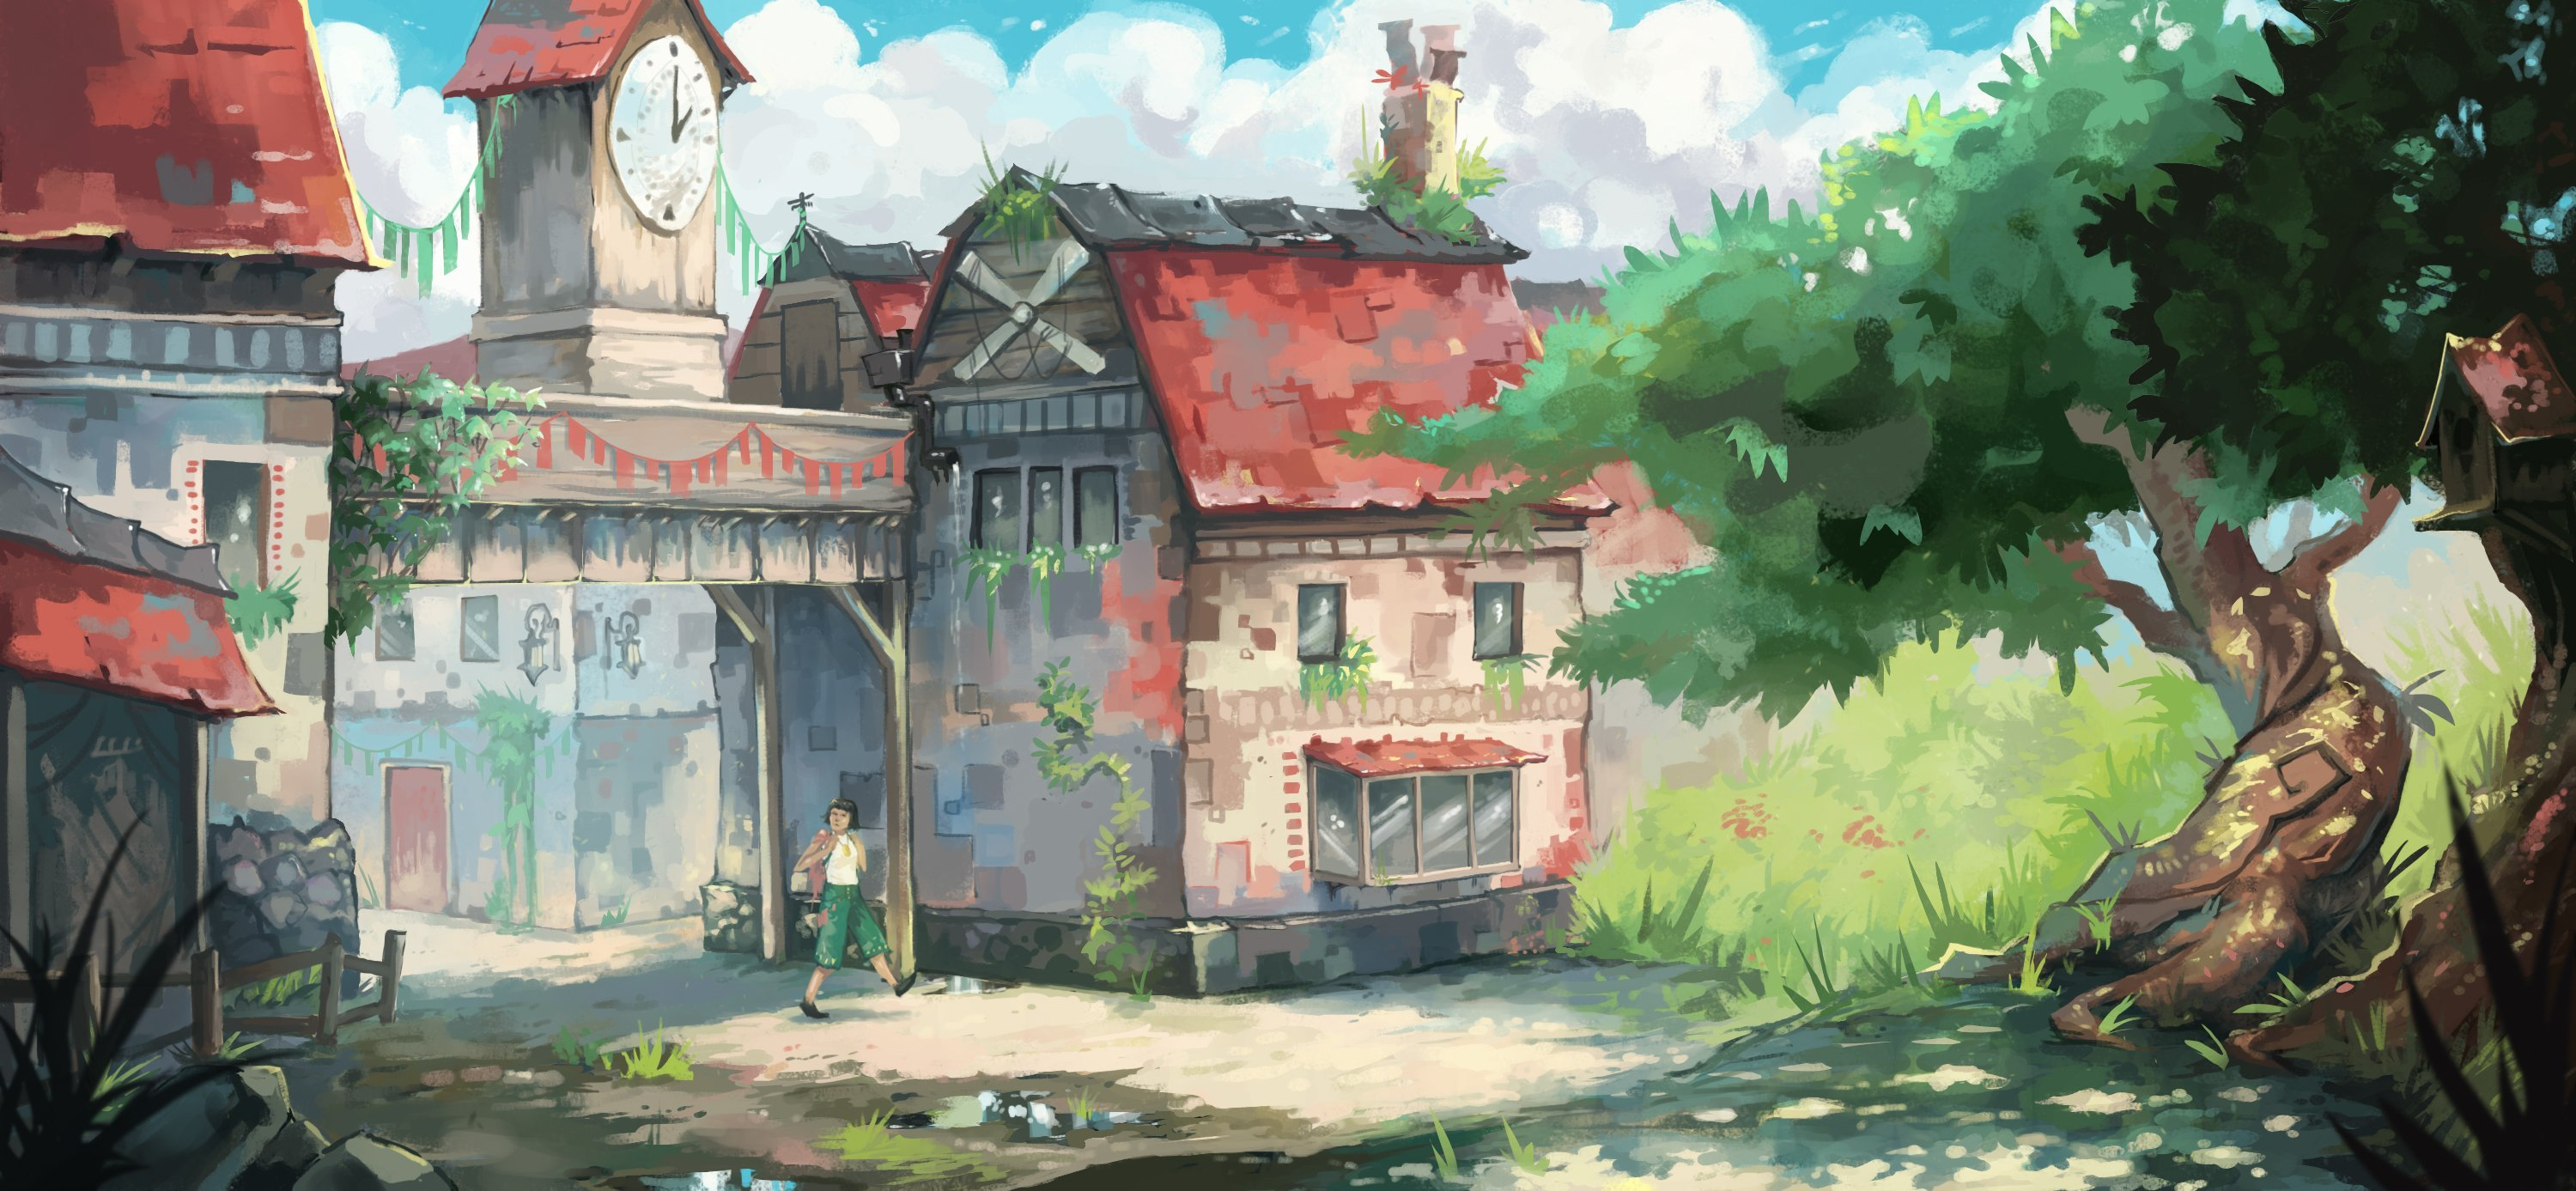 Anna's personal art is a painterly style, which is sometimes interpreted into game environments by other artists.